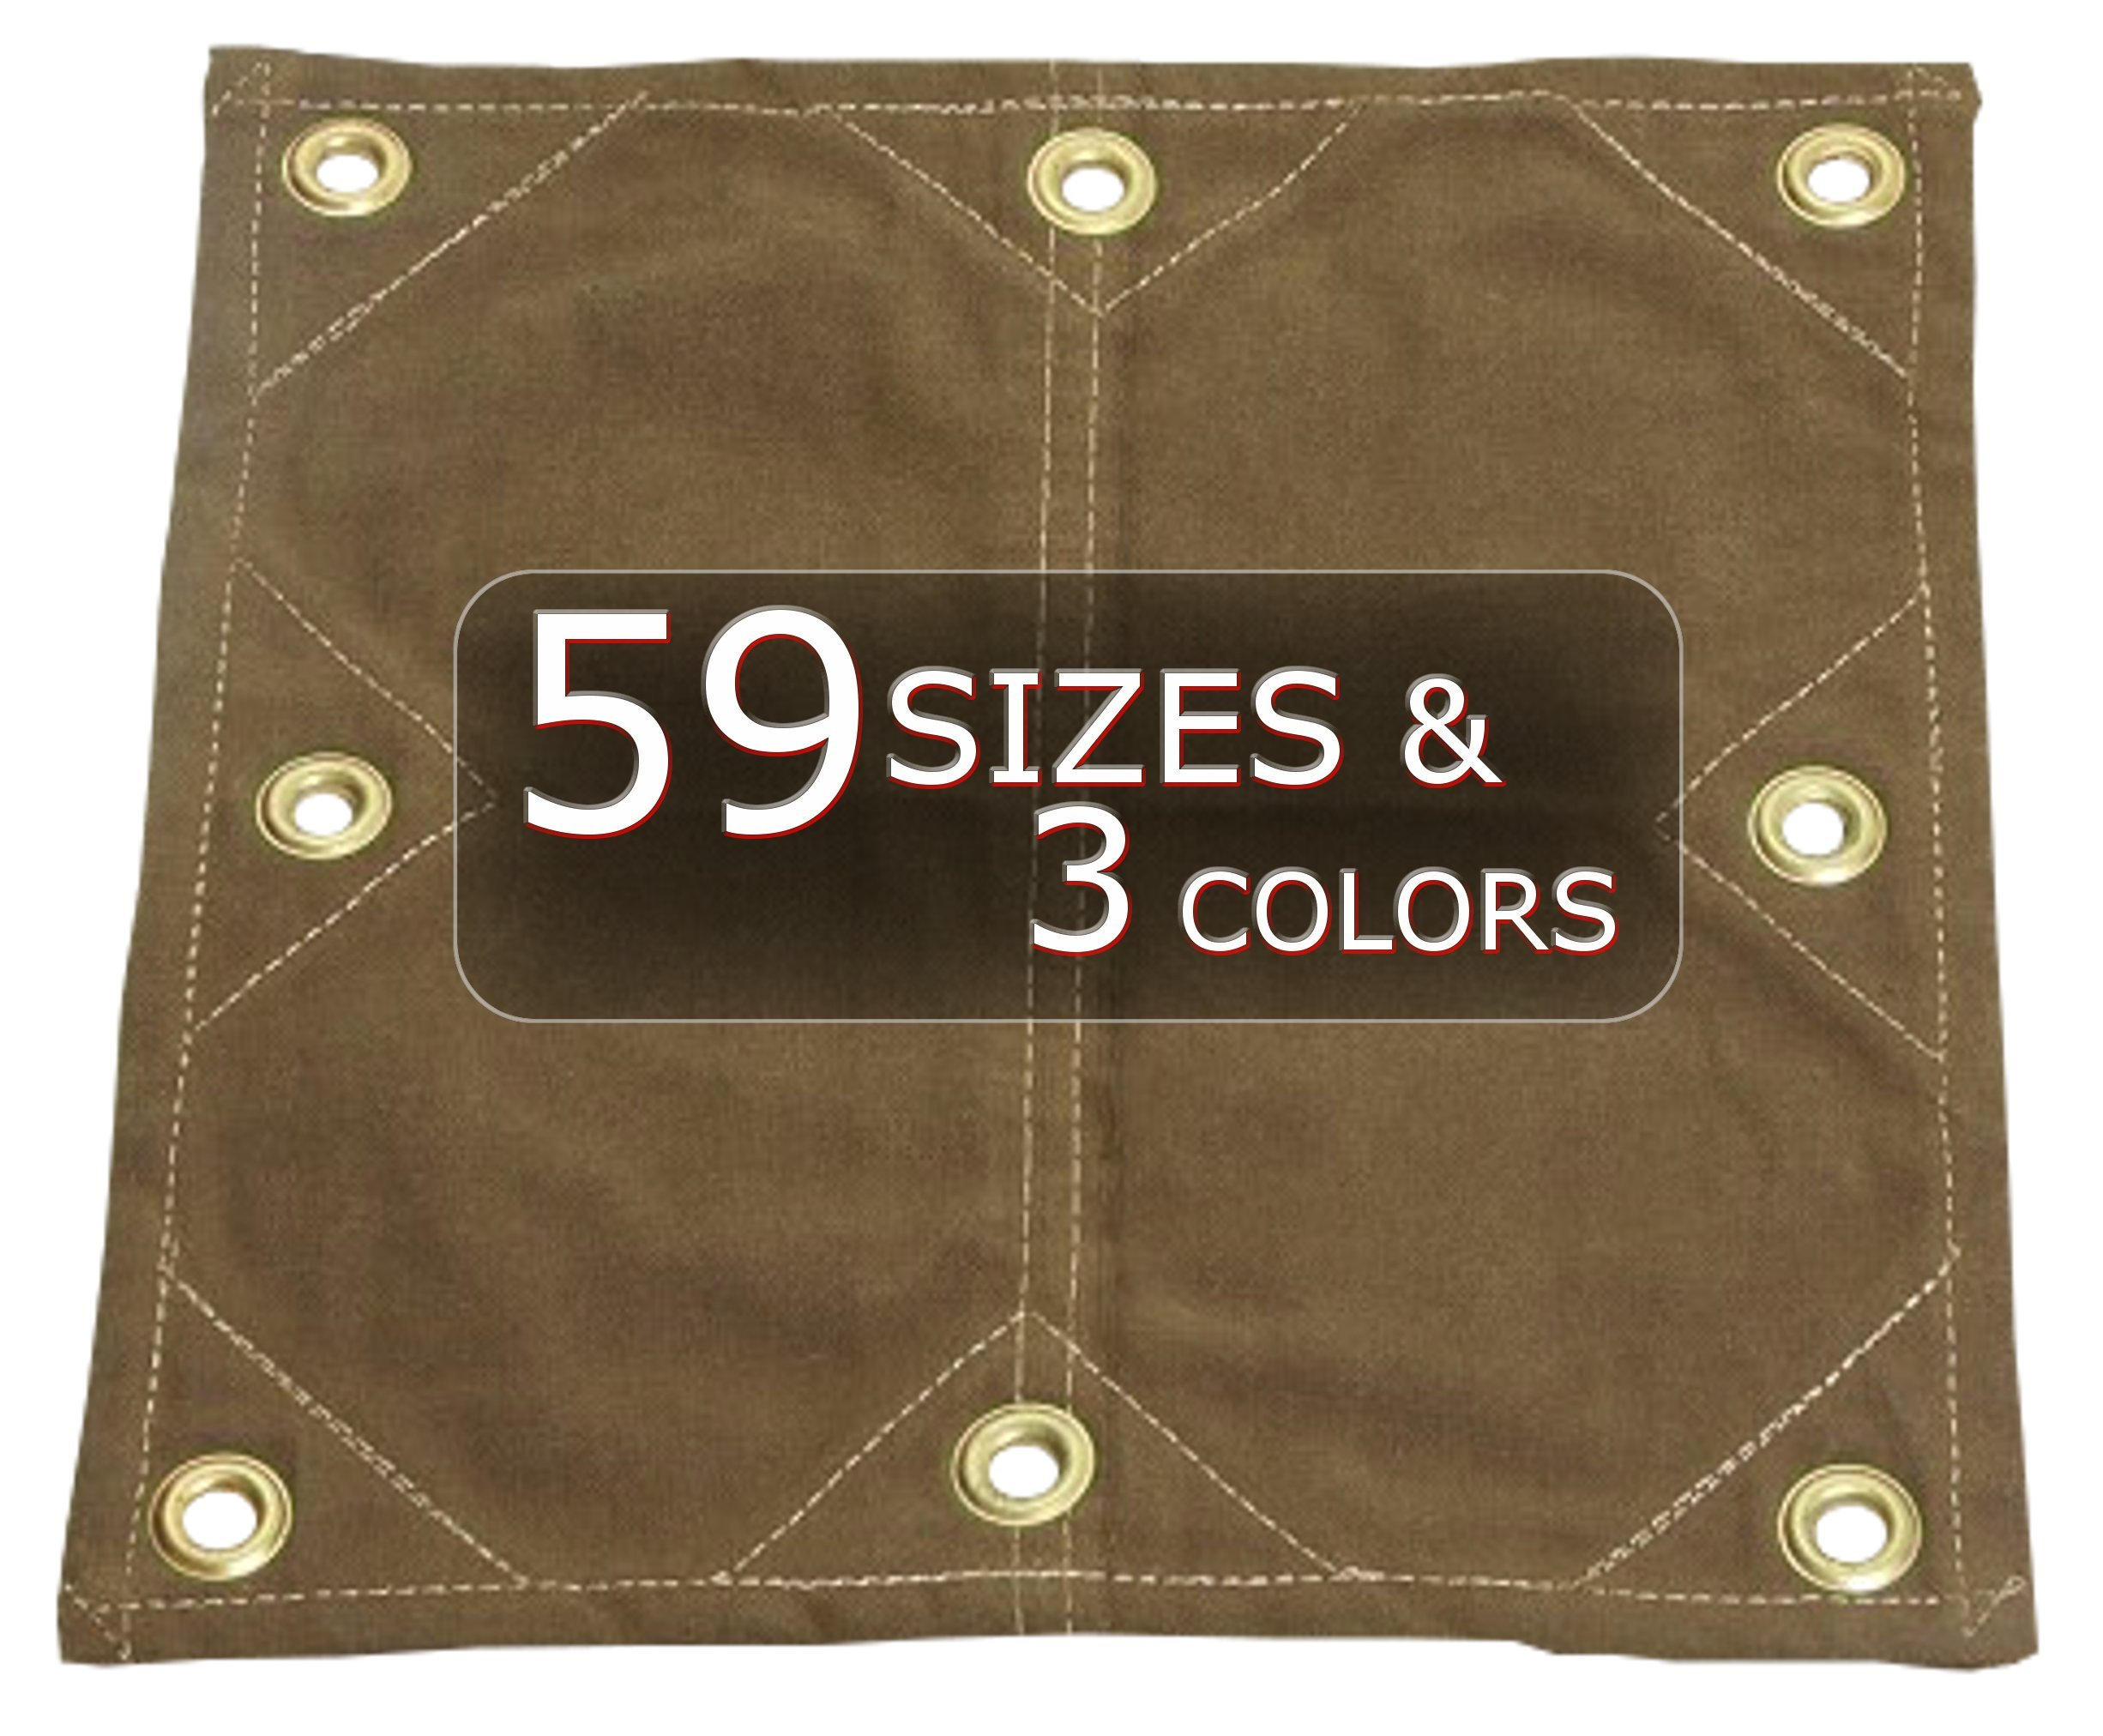 8x12 18oz Heavy Duty Canvas Tarp with Reinforced Grommets Every 12'' by Tarp Nation